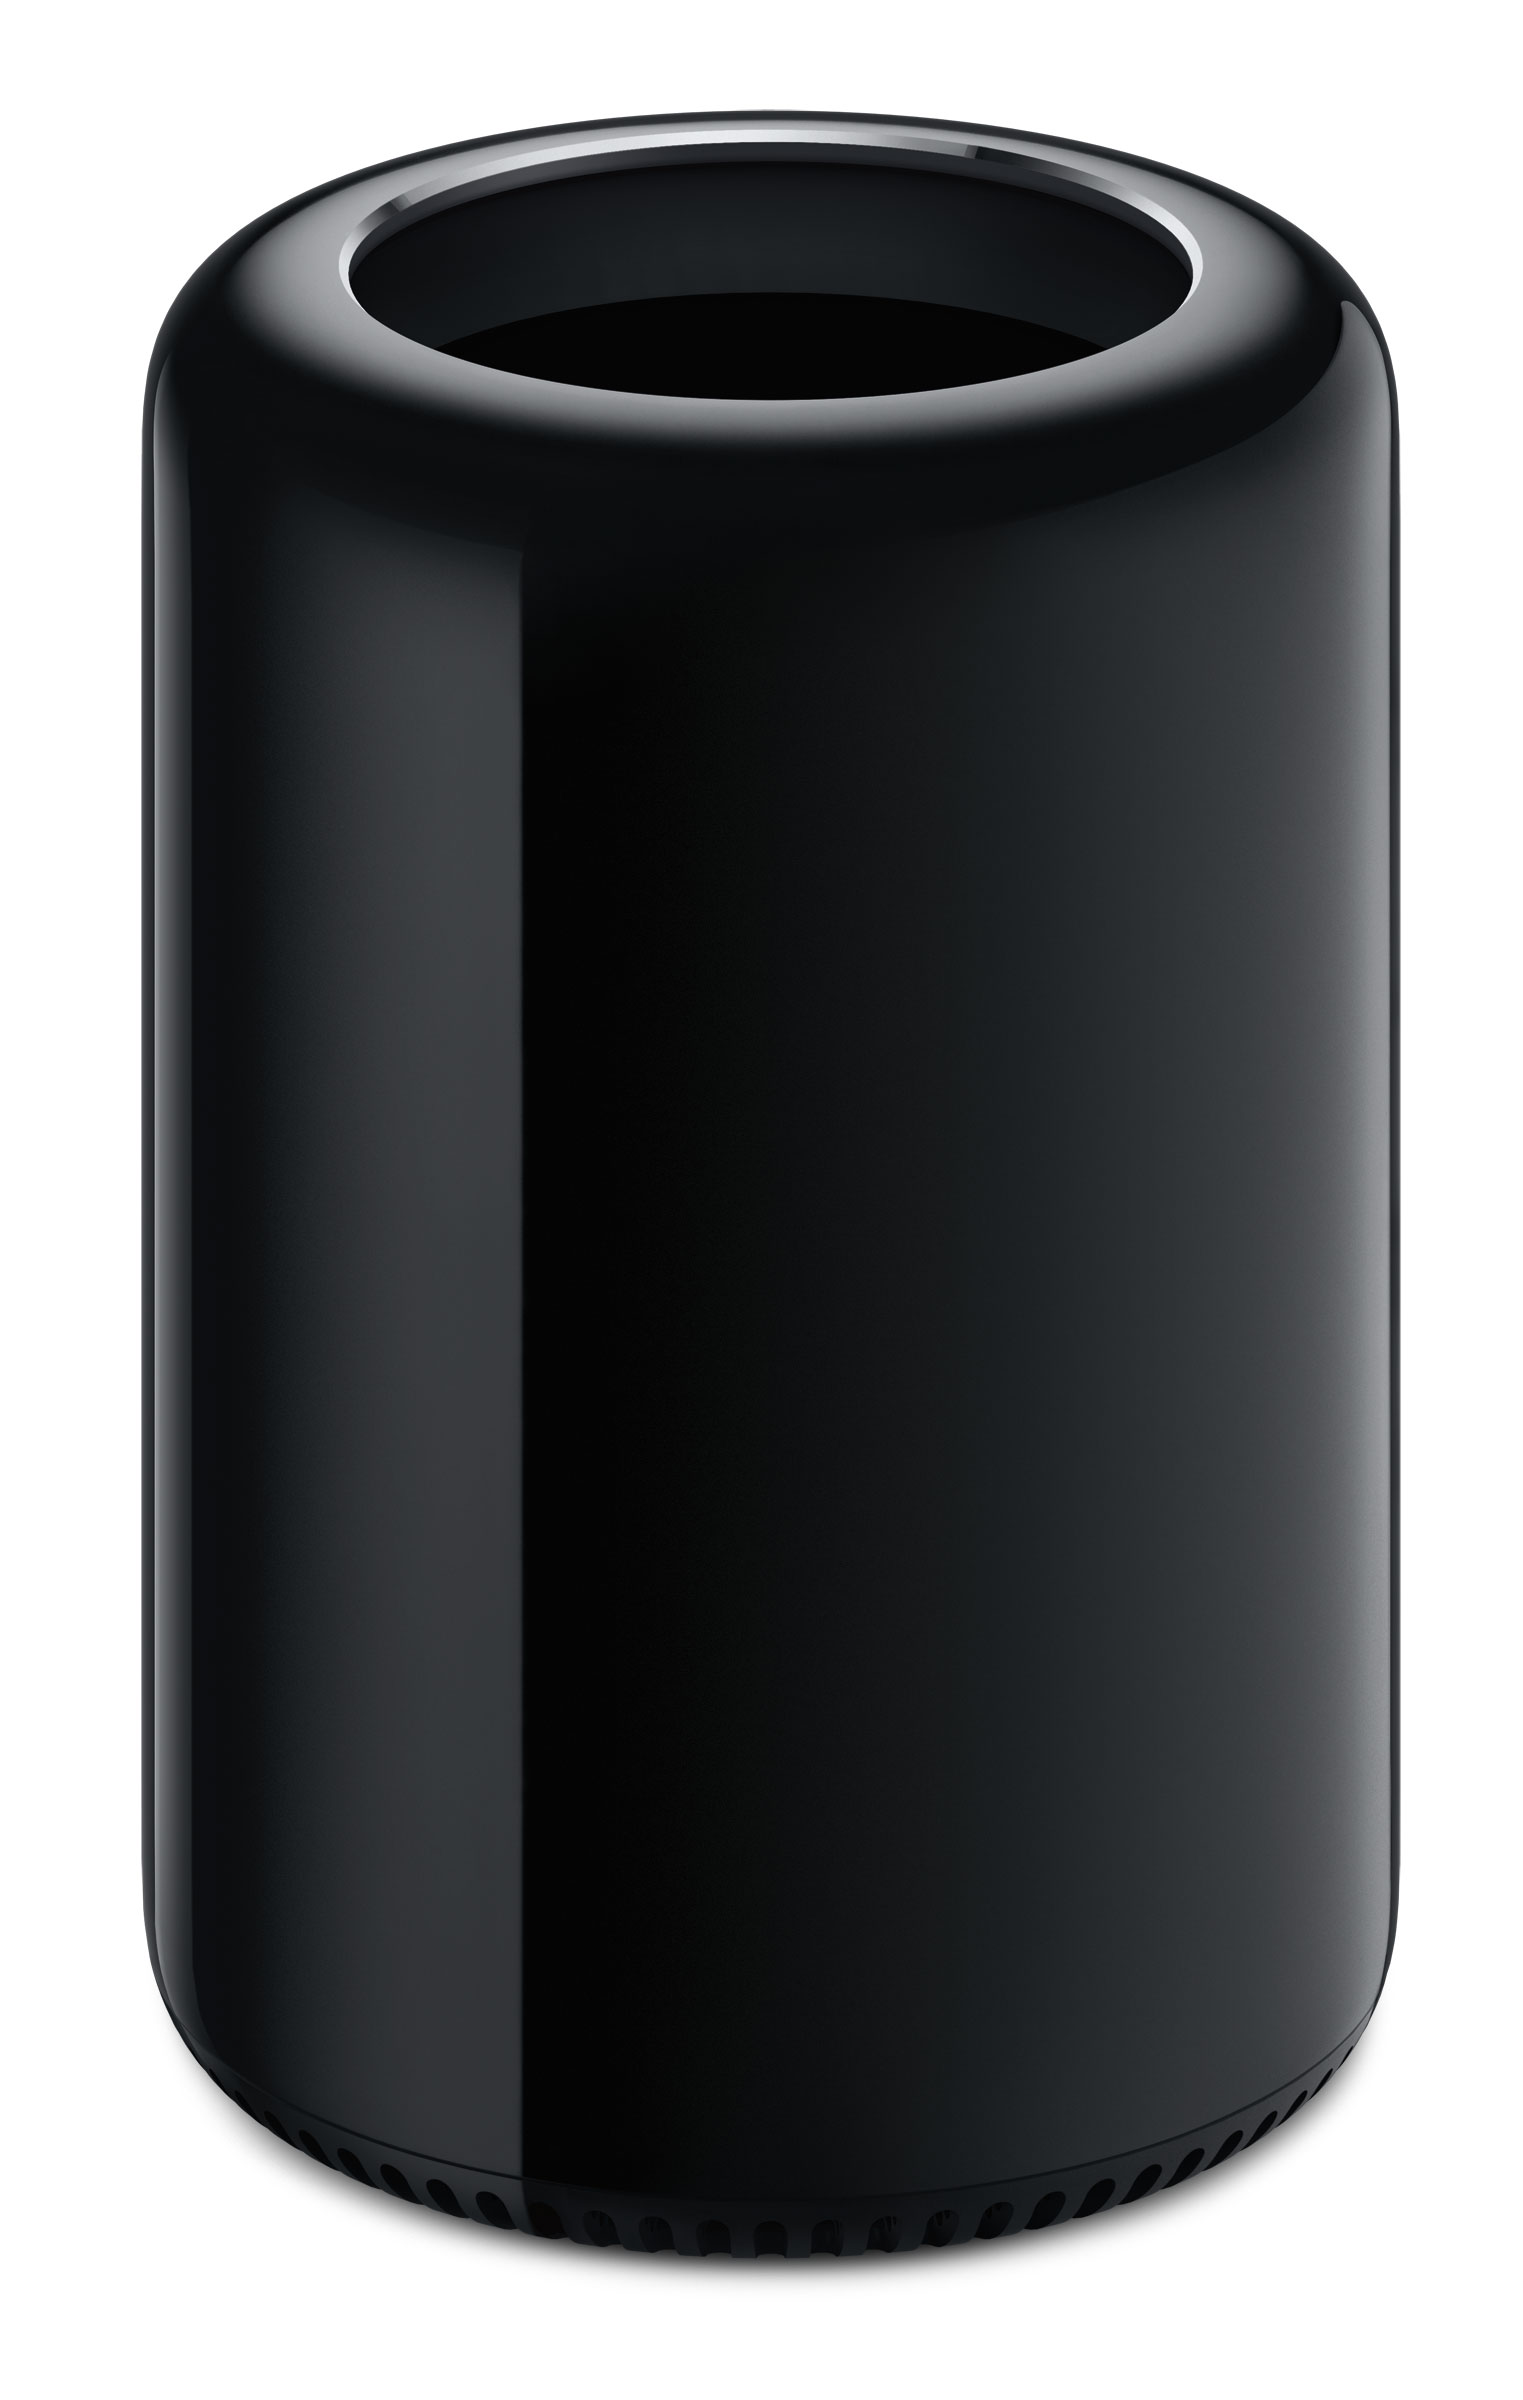 Apple's U.S.-assembled jet-engine Mac Pro